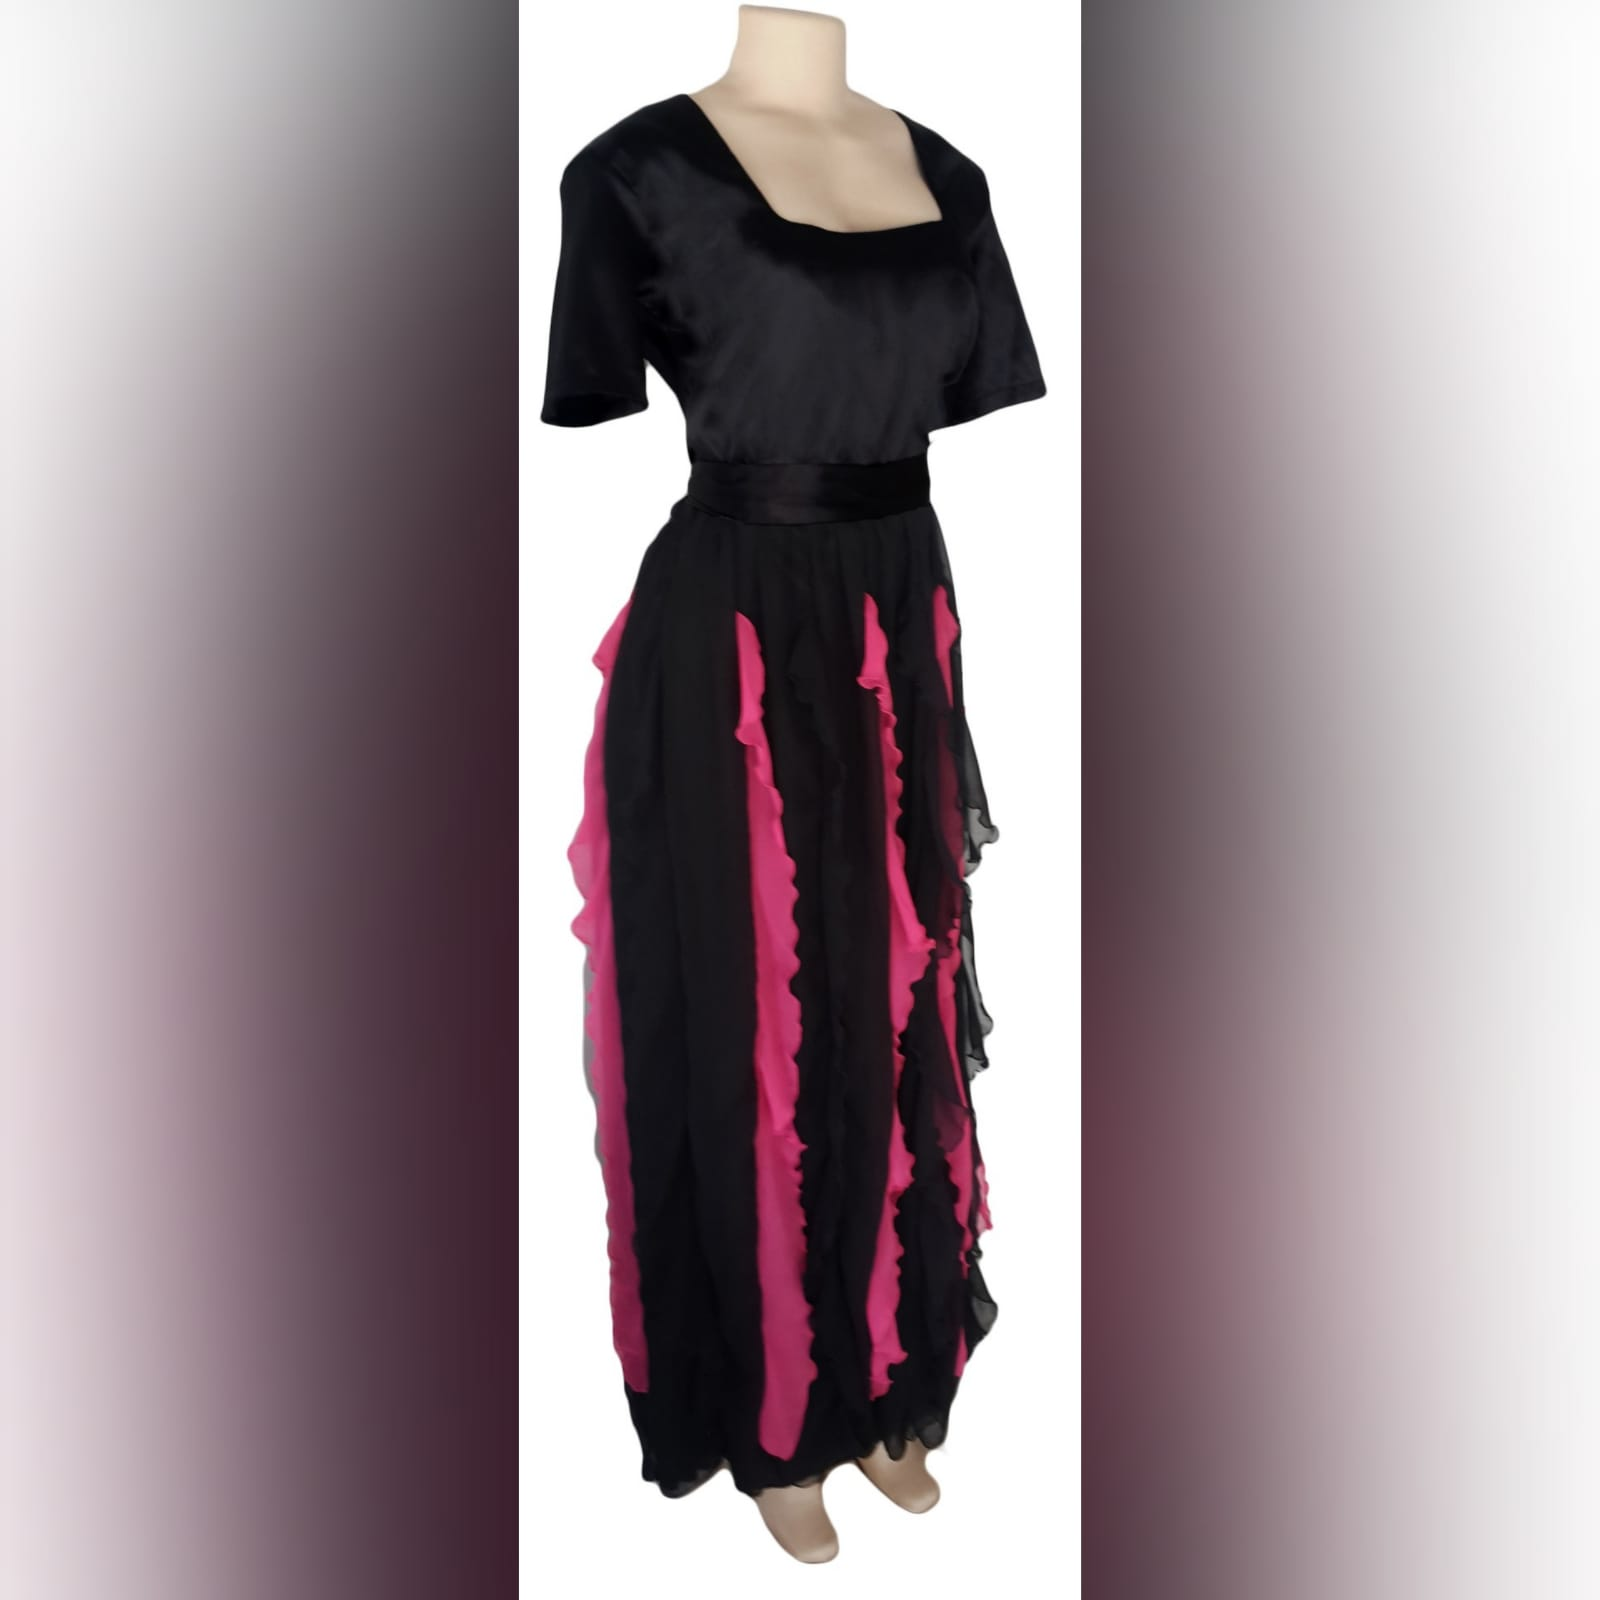 Black and pink evening dress 1 black & pink evening dress with square neckline short sleeves & vertical pink and black frills